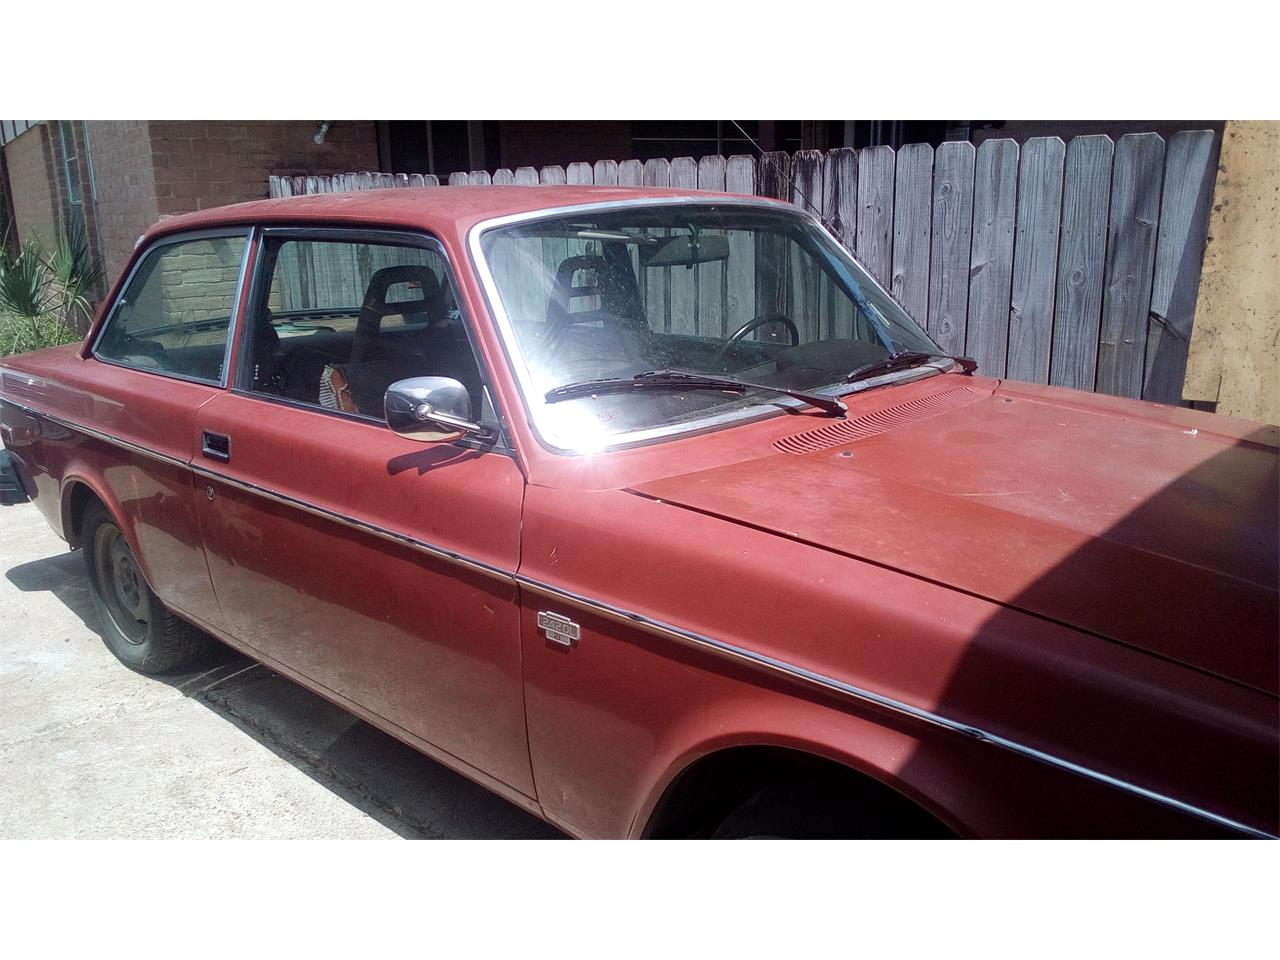 1977 Volvo 242 (CC-1138397) for sale in Missouri City, Texas